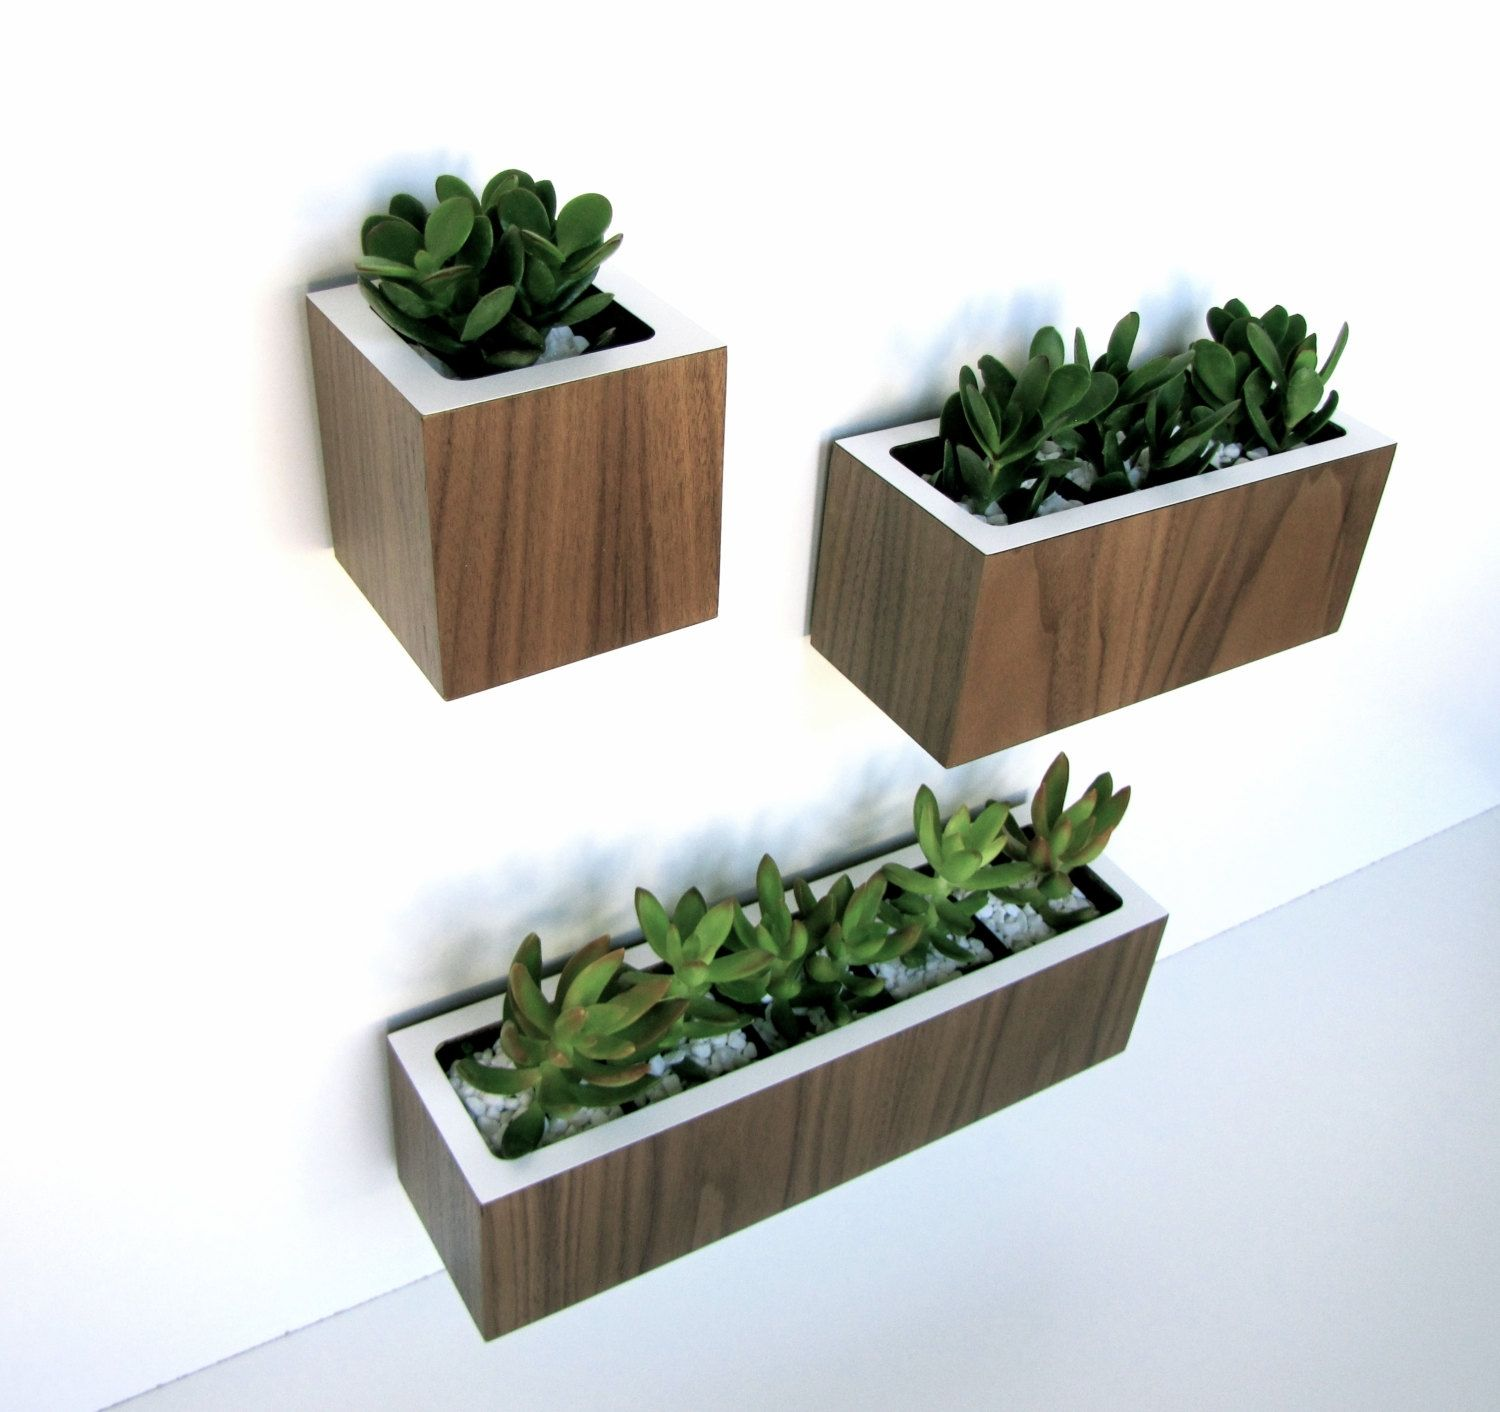 Wall Mounted Wooden Planter Boxes Hanging Planter Boxes 400 x 300